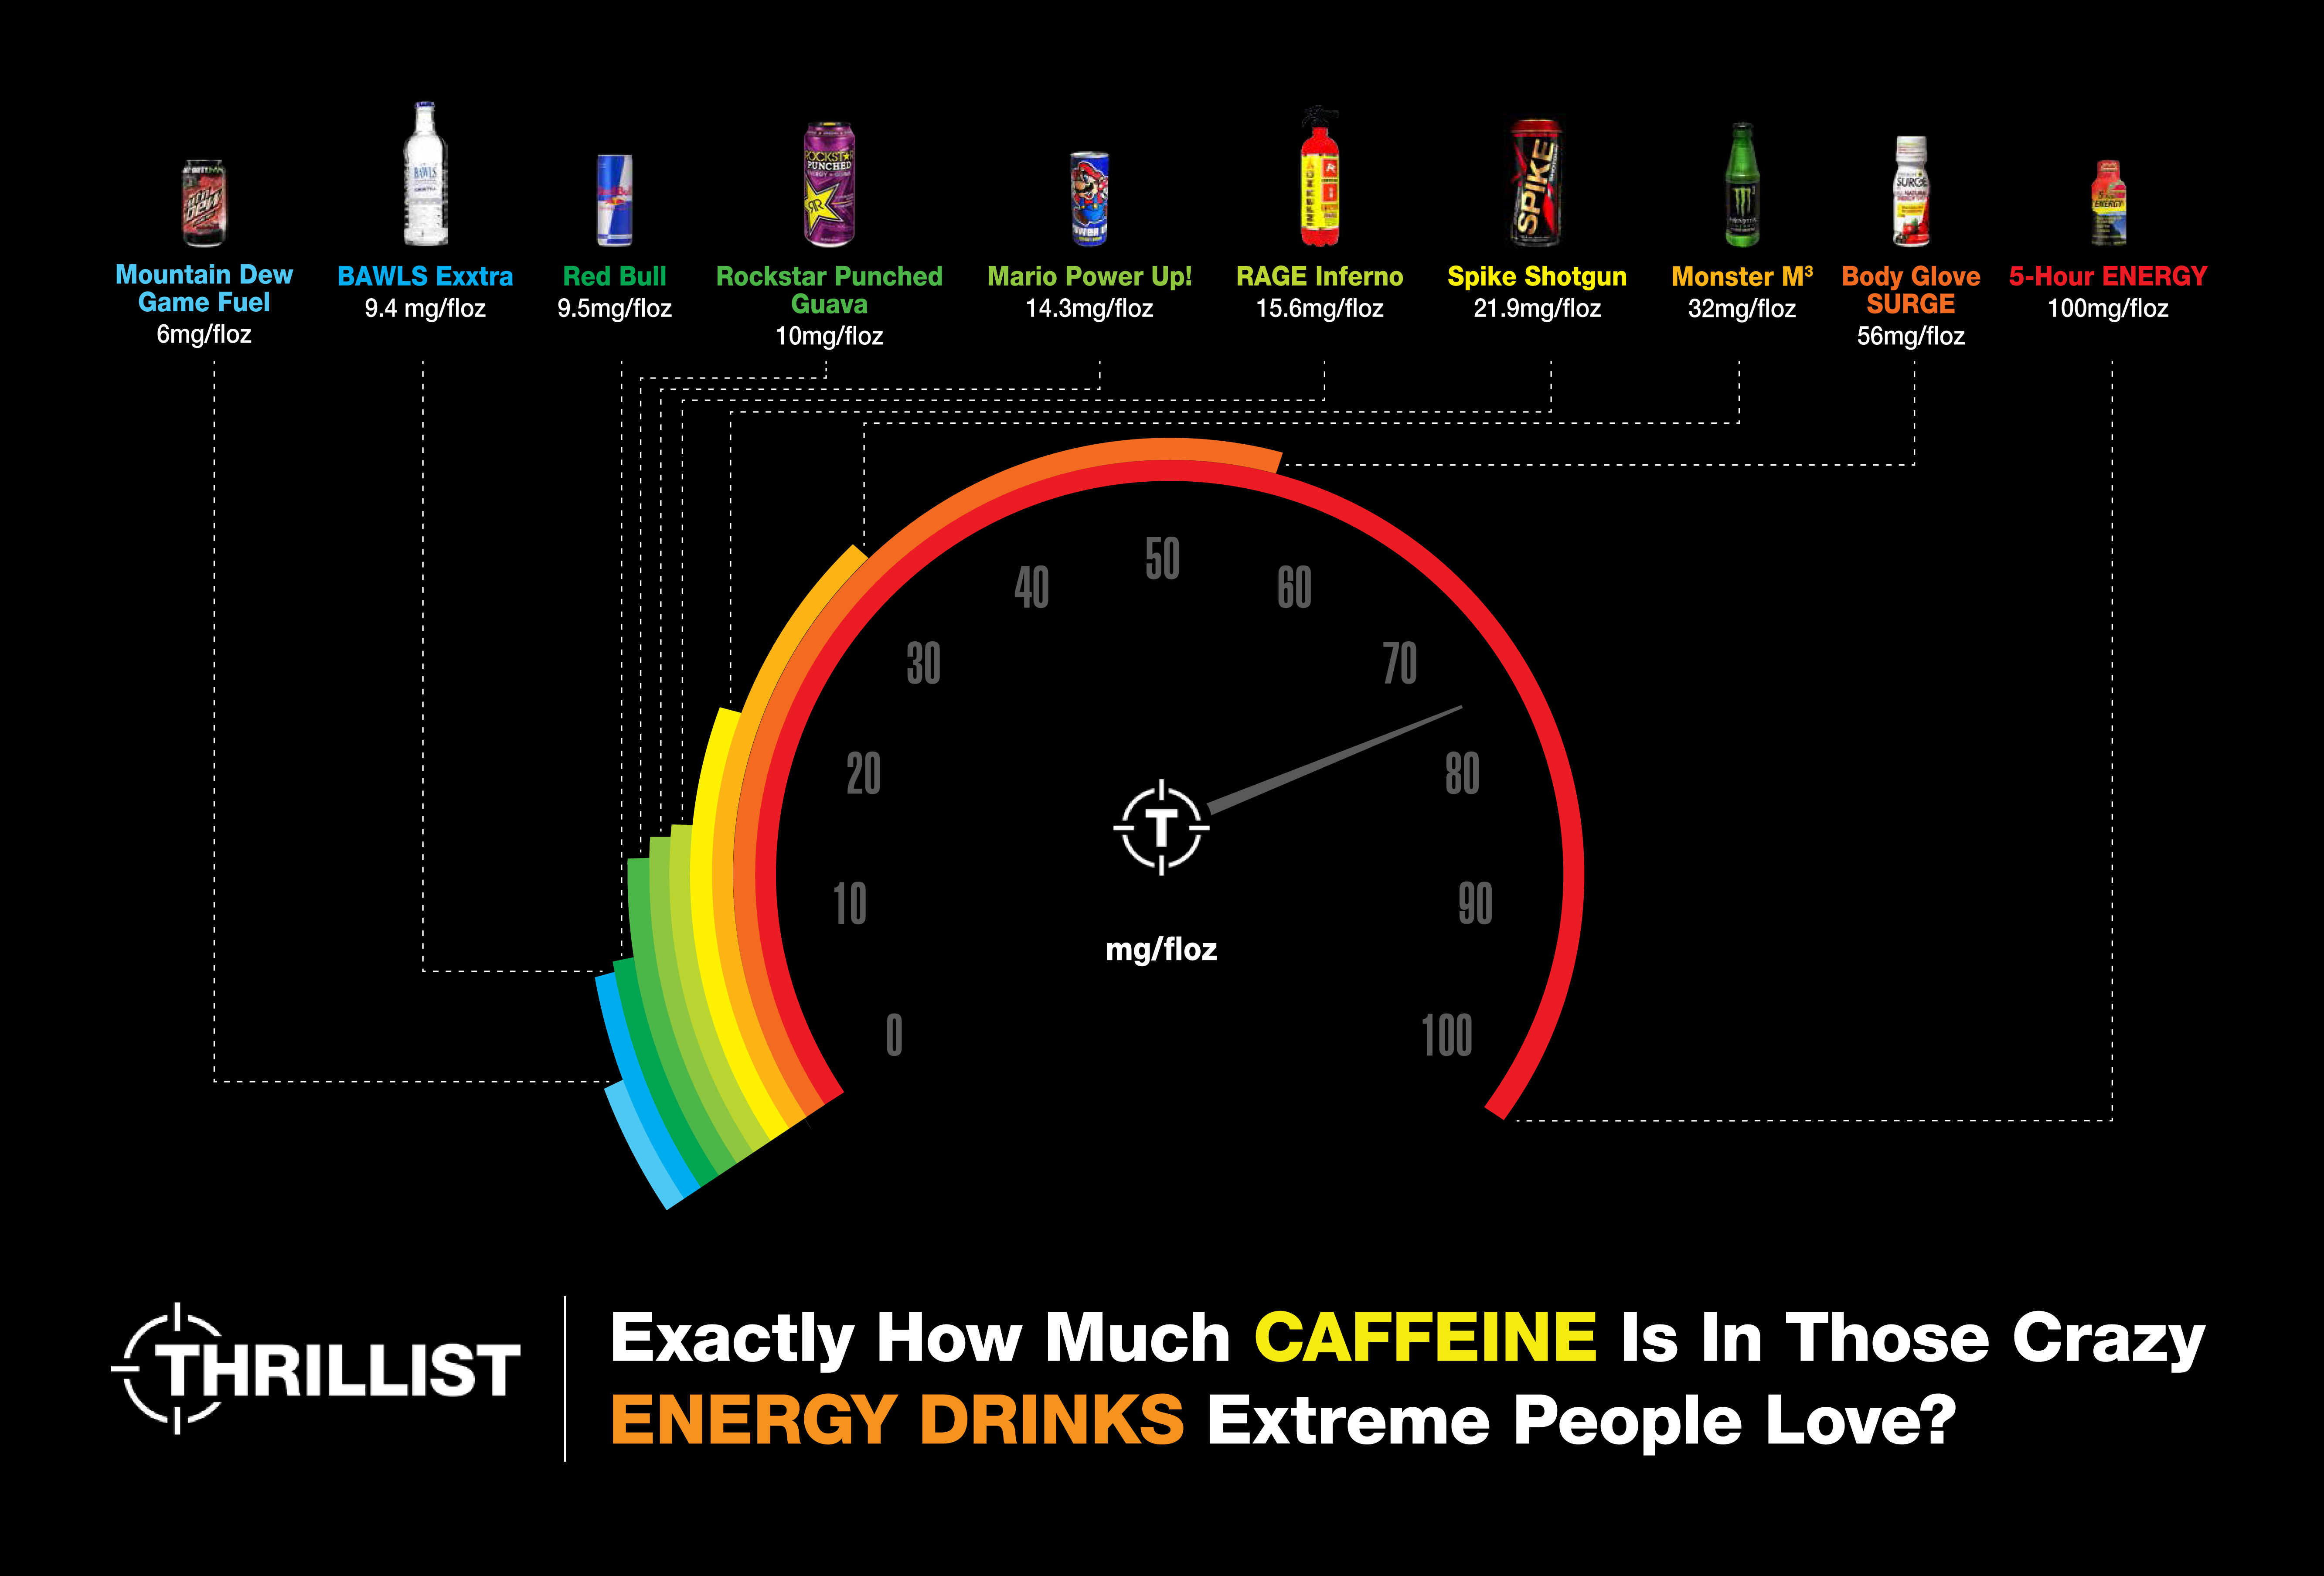 Exactly How Much Caffeine Is In Those Crazy Energy Drinks Extreme People Love